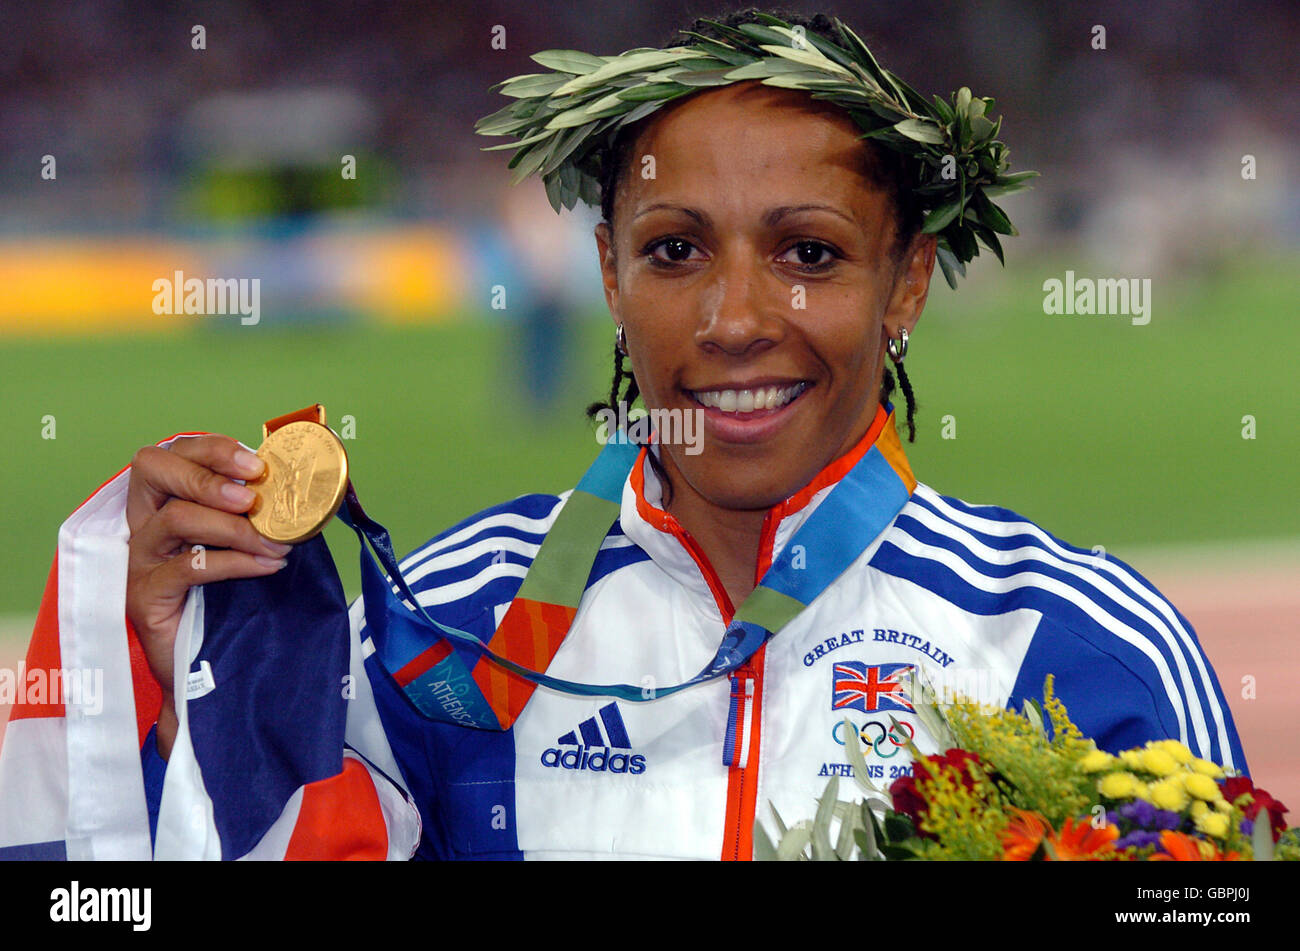 Kelly Holmes 3 Olympic medals in middle distance running